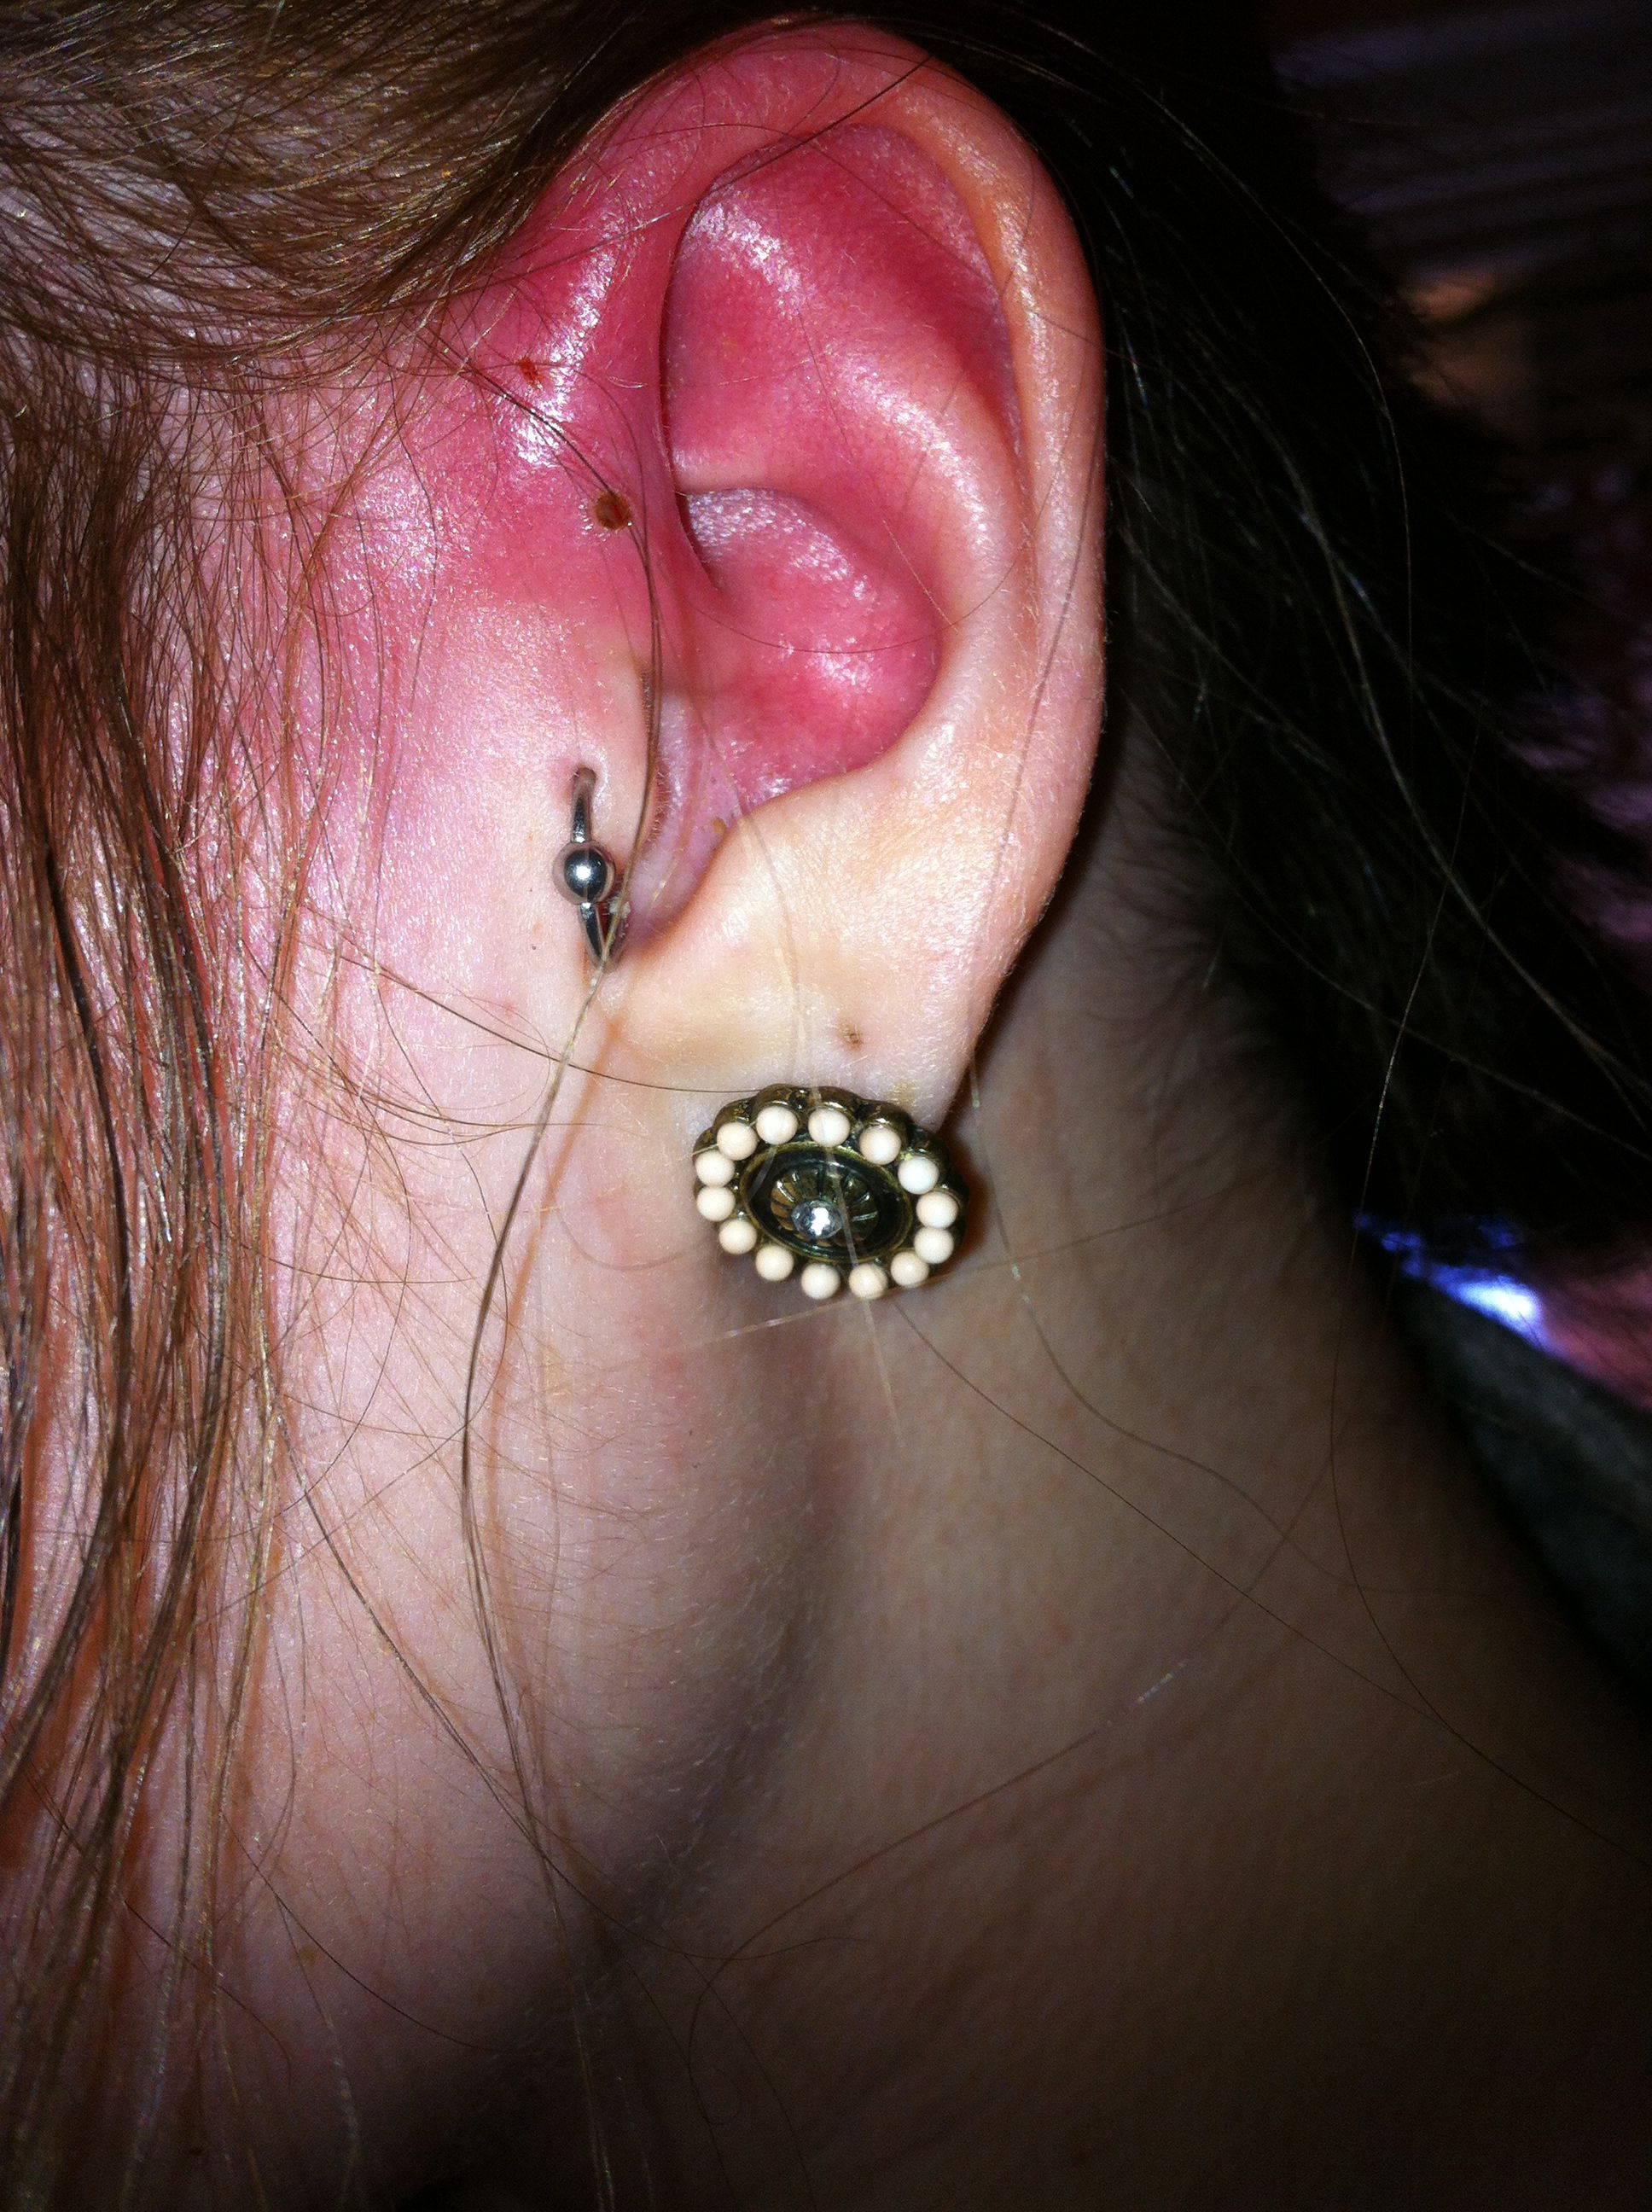 Infected Cartilage Piercing Piercing